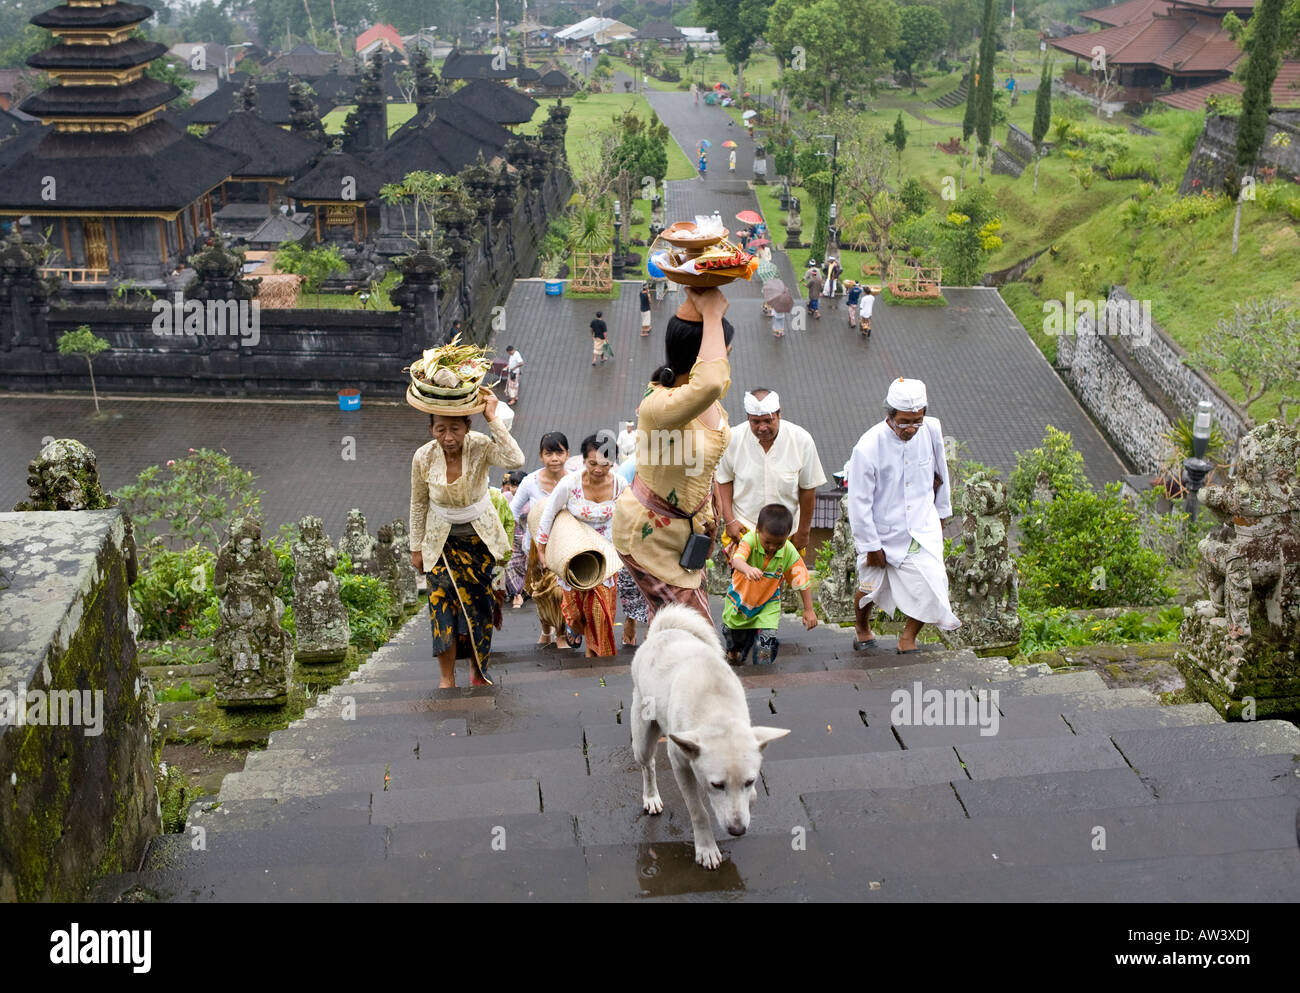 A Balinese Funeral Procession Carrying Umbrellas Climbing The Steps Up To The Pura Besakih Temple Bali Indonesia - Stock Image